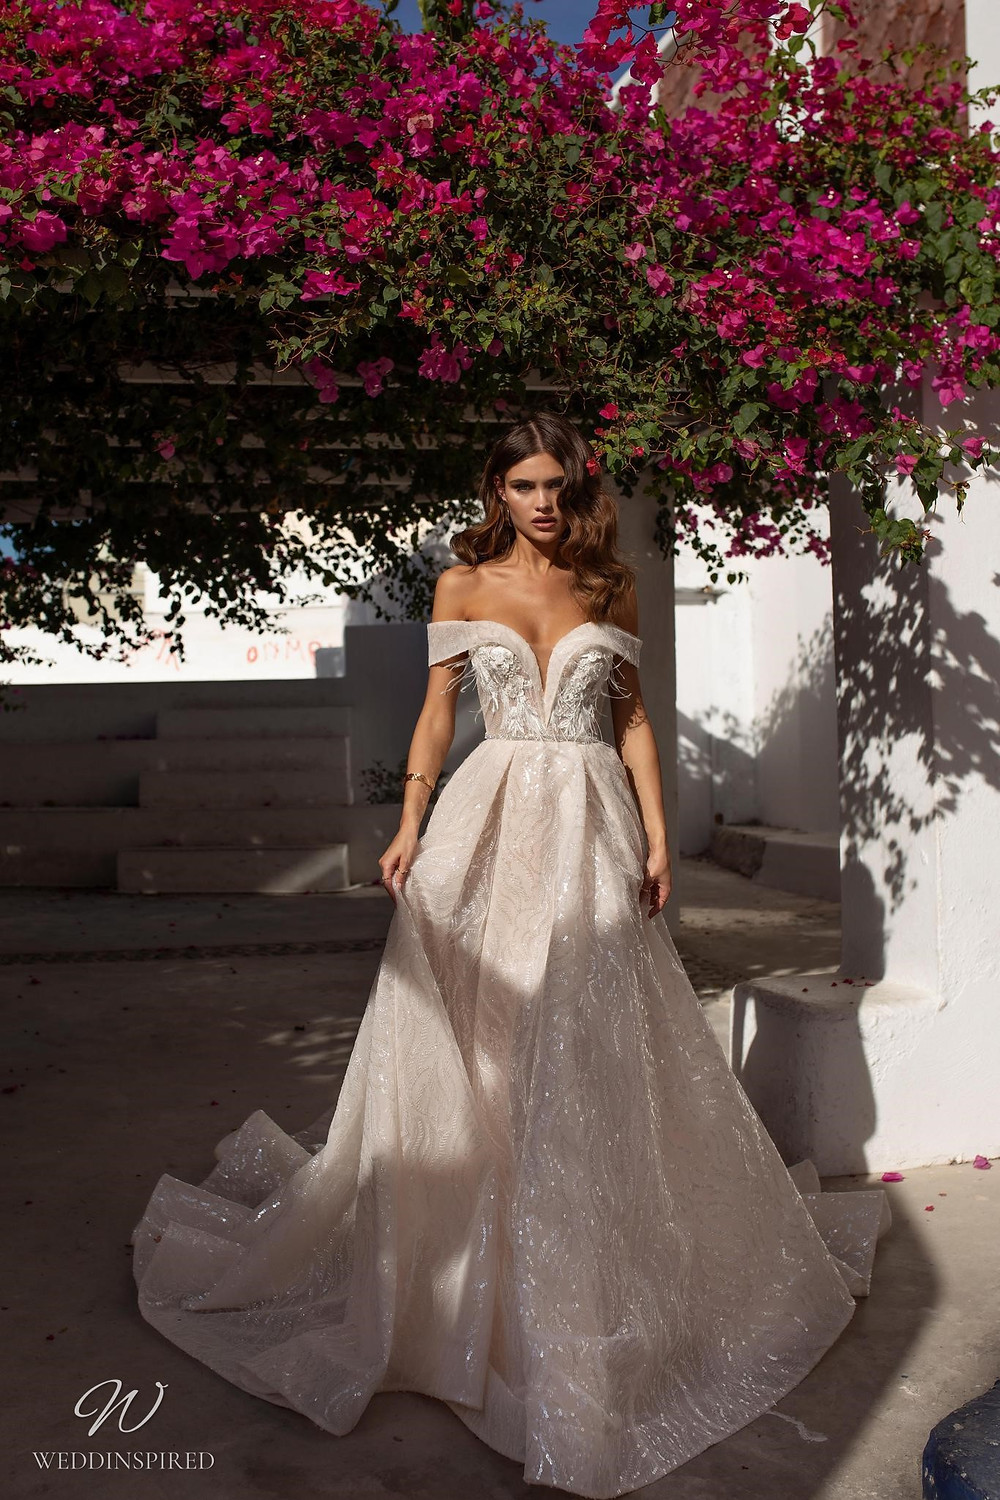 A Ricca Sposa off the shoulder sparkly ball gown wedding dress with a sweetheart neckline